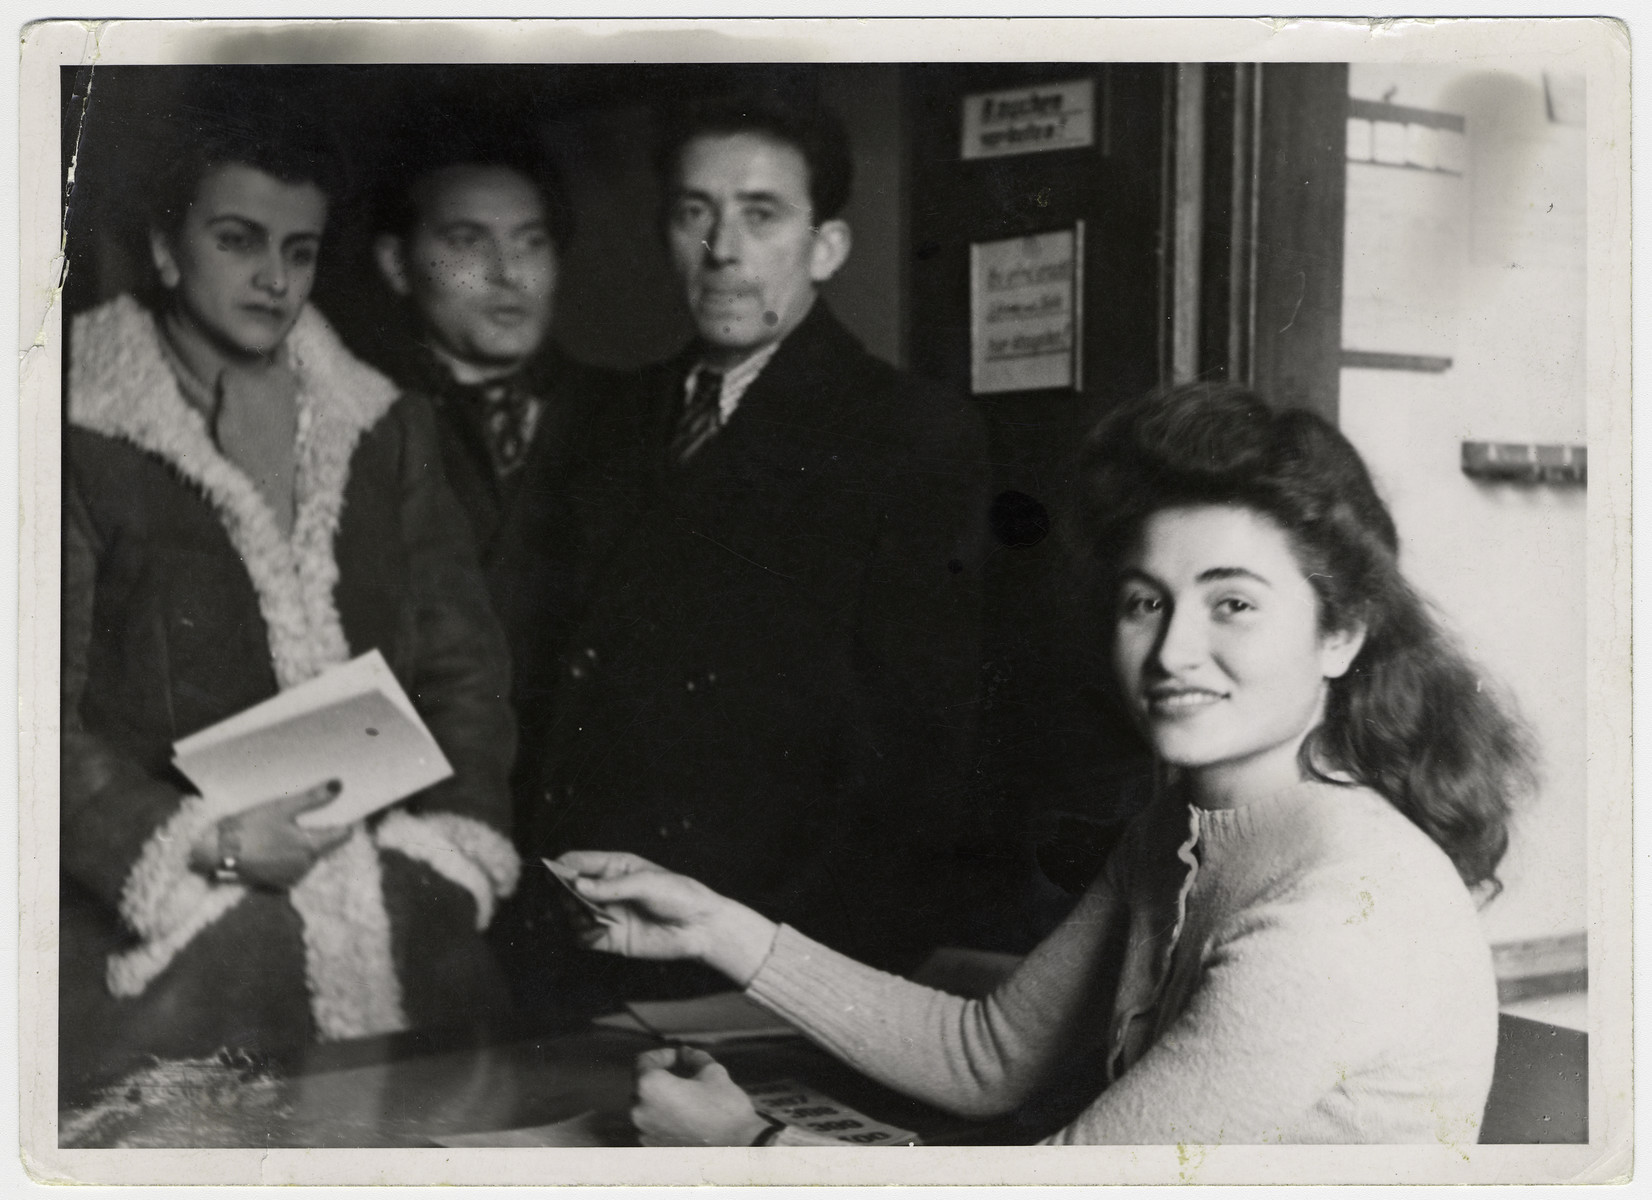 A woman sells tickets at the entrance to Pinchas Shaar's paintings exhibition in Munich.  Pictured, from the left, are donor's husband, Pinchas Szwarc (later Shaar), Hirsch Szylis and Ruth Kardoso-Vaelkel (on the right).